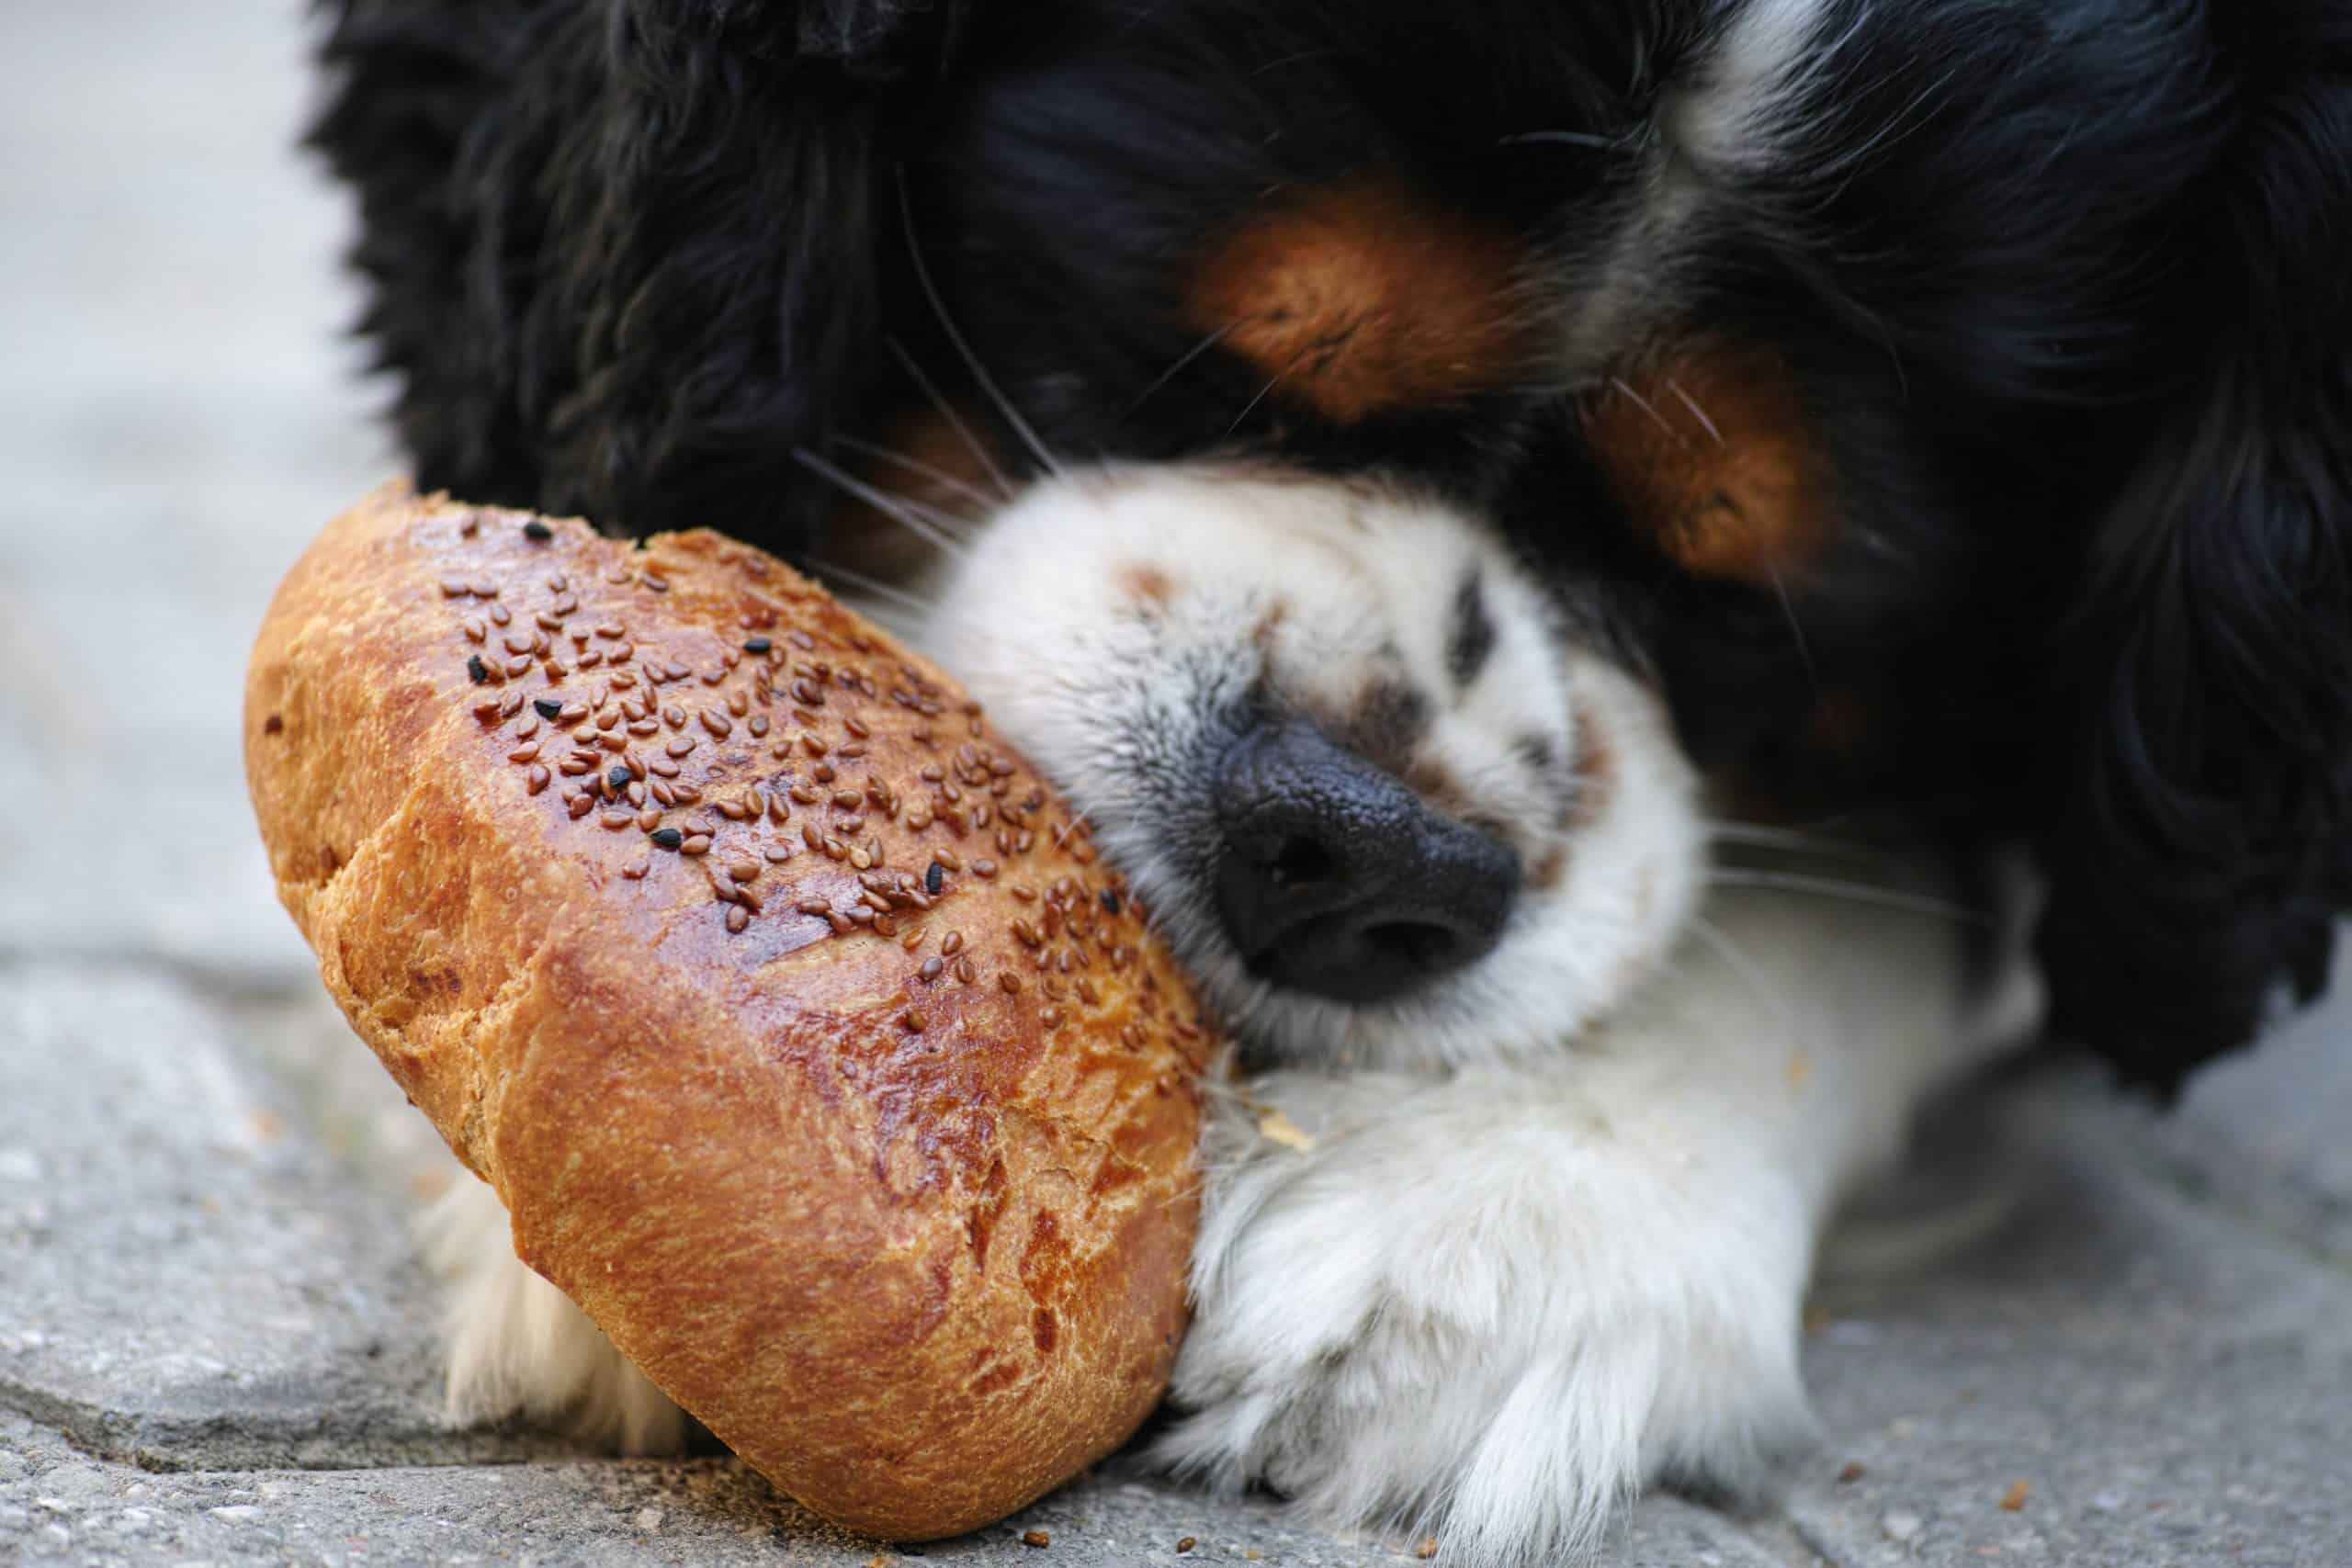 tricolor-cavalier-king-charles-spaniel-puppy-eating-bread